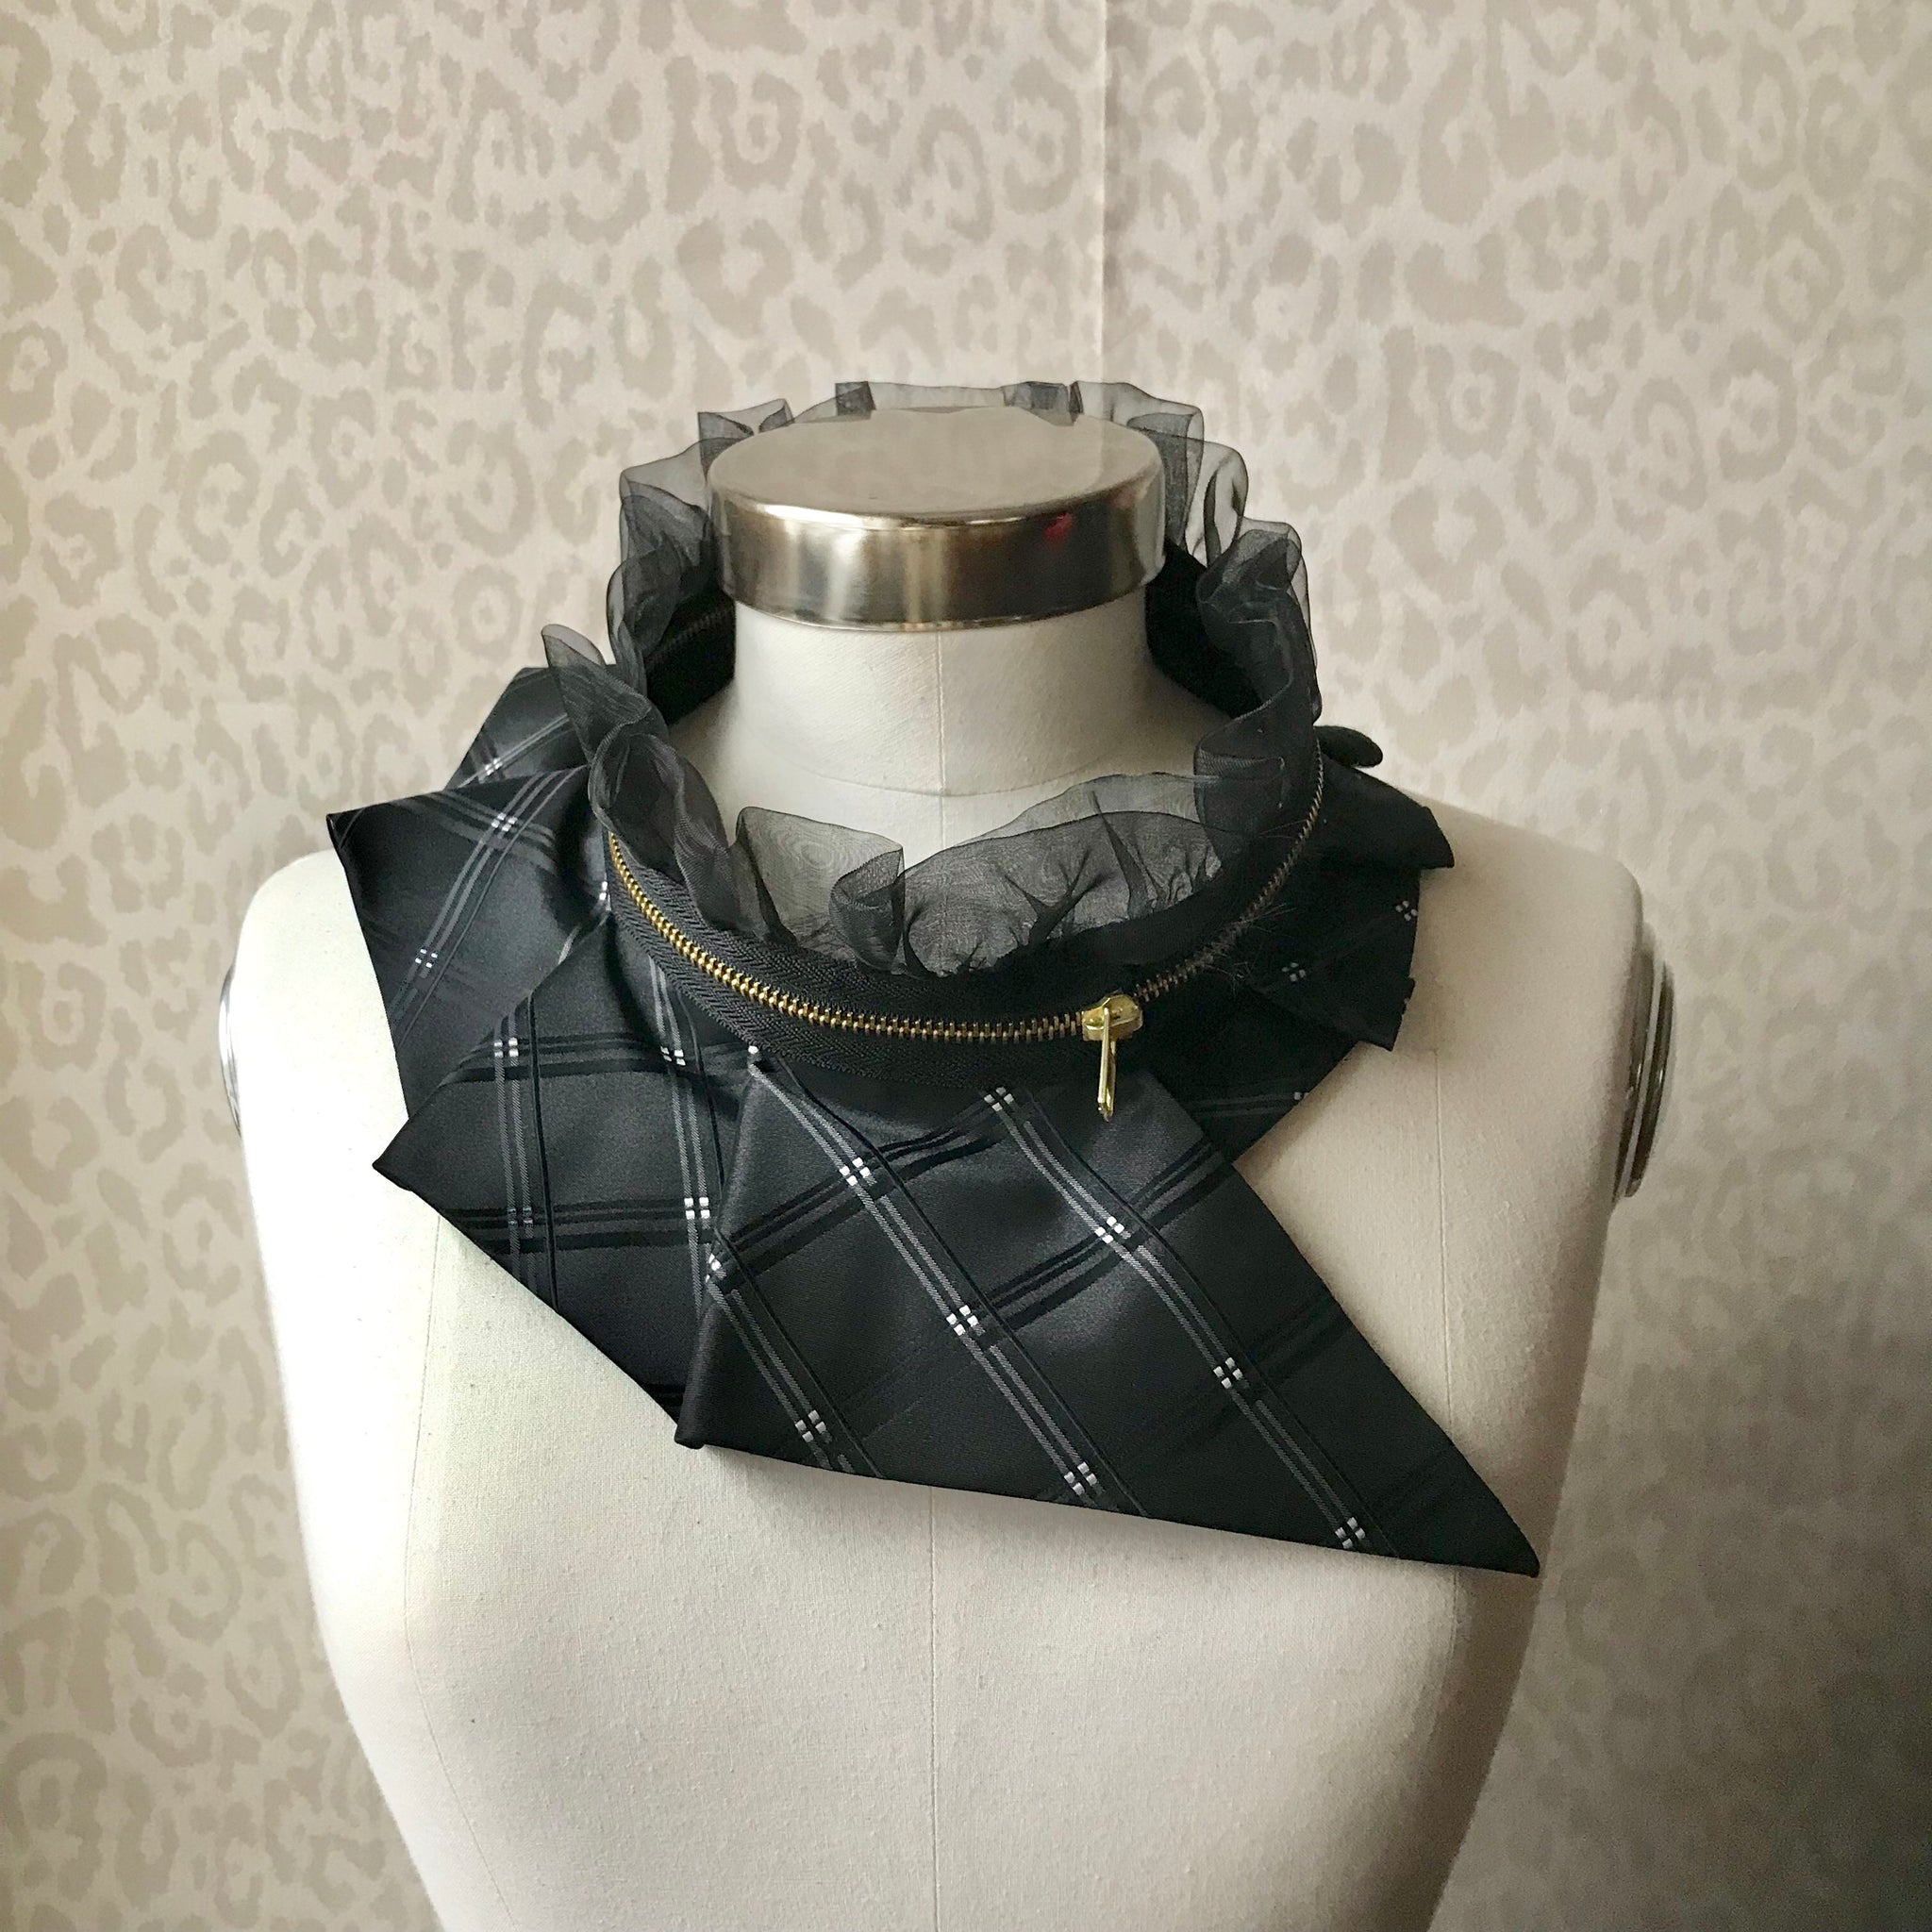 Zipper collar necklace #286